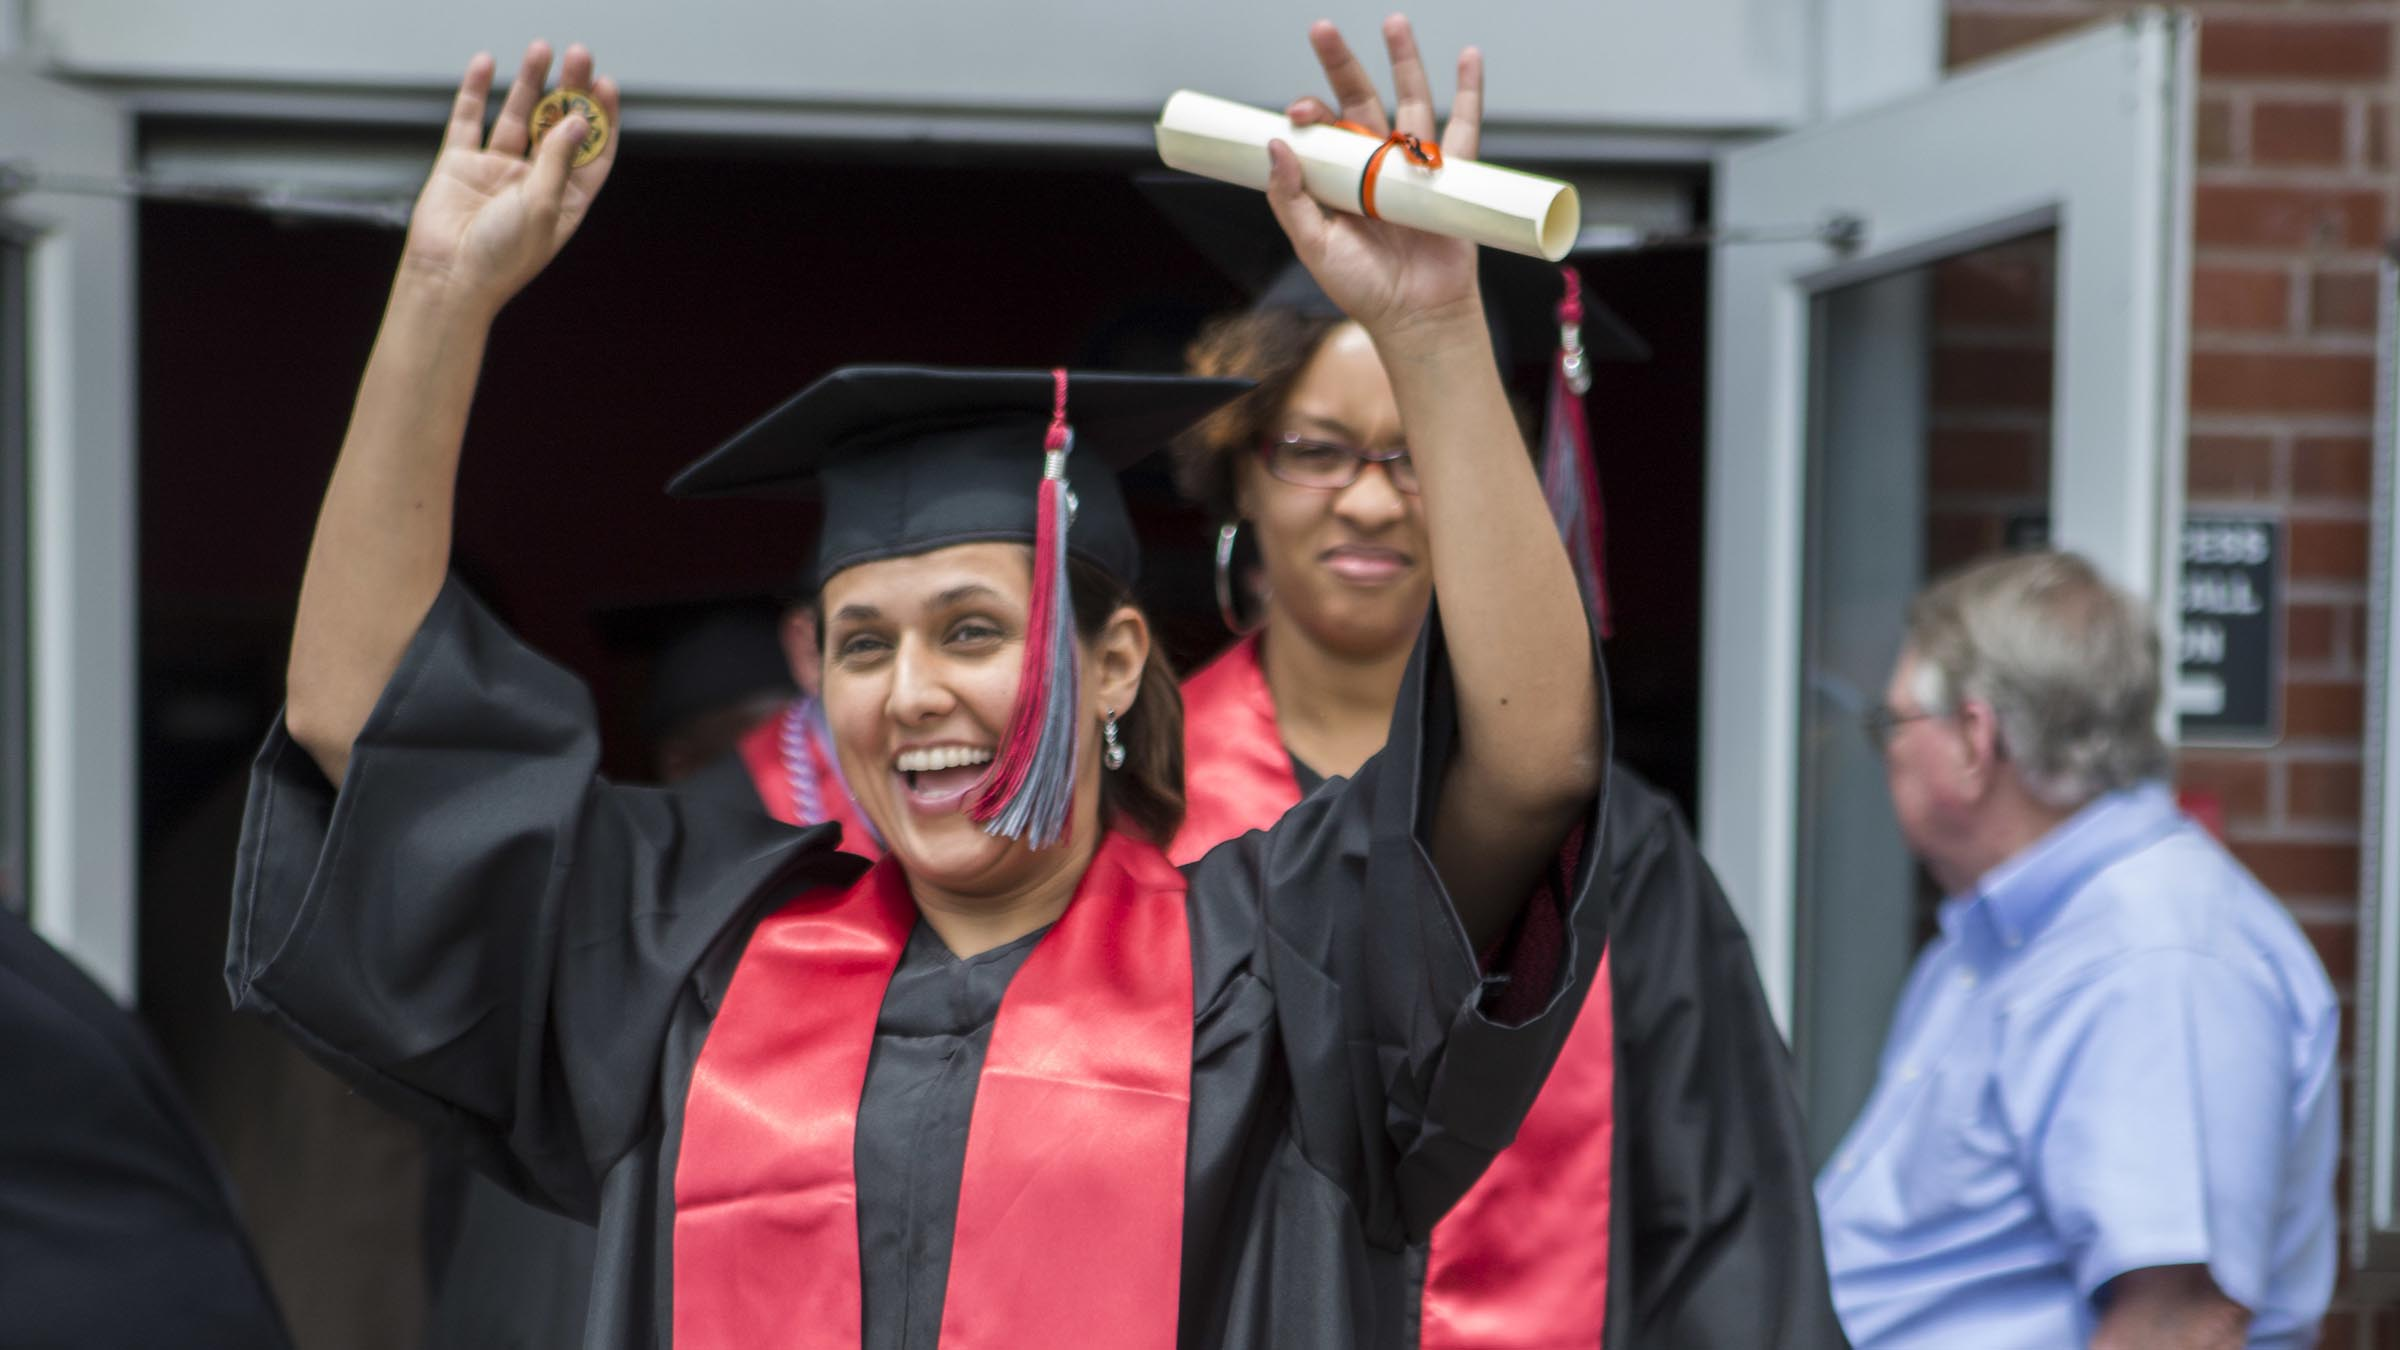 Graduating woman excited with diploma